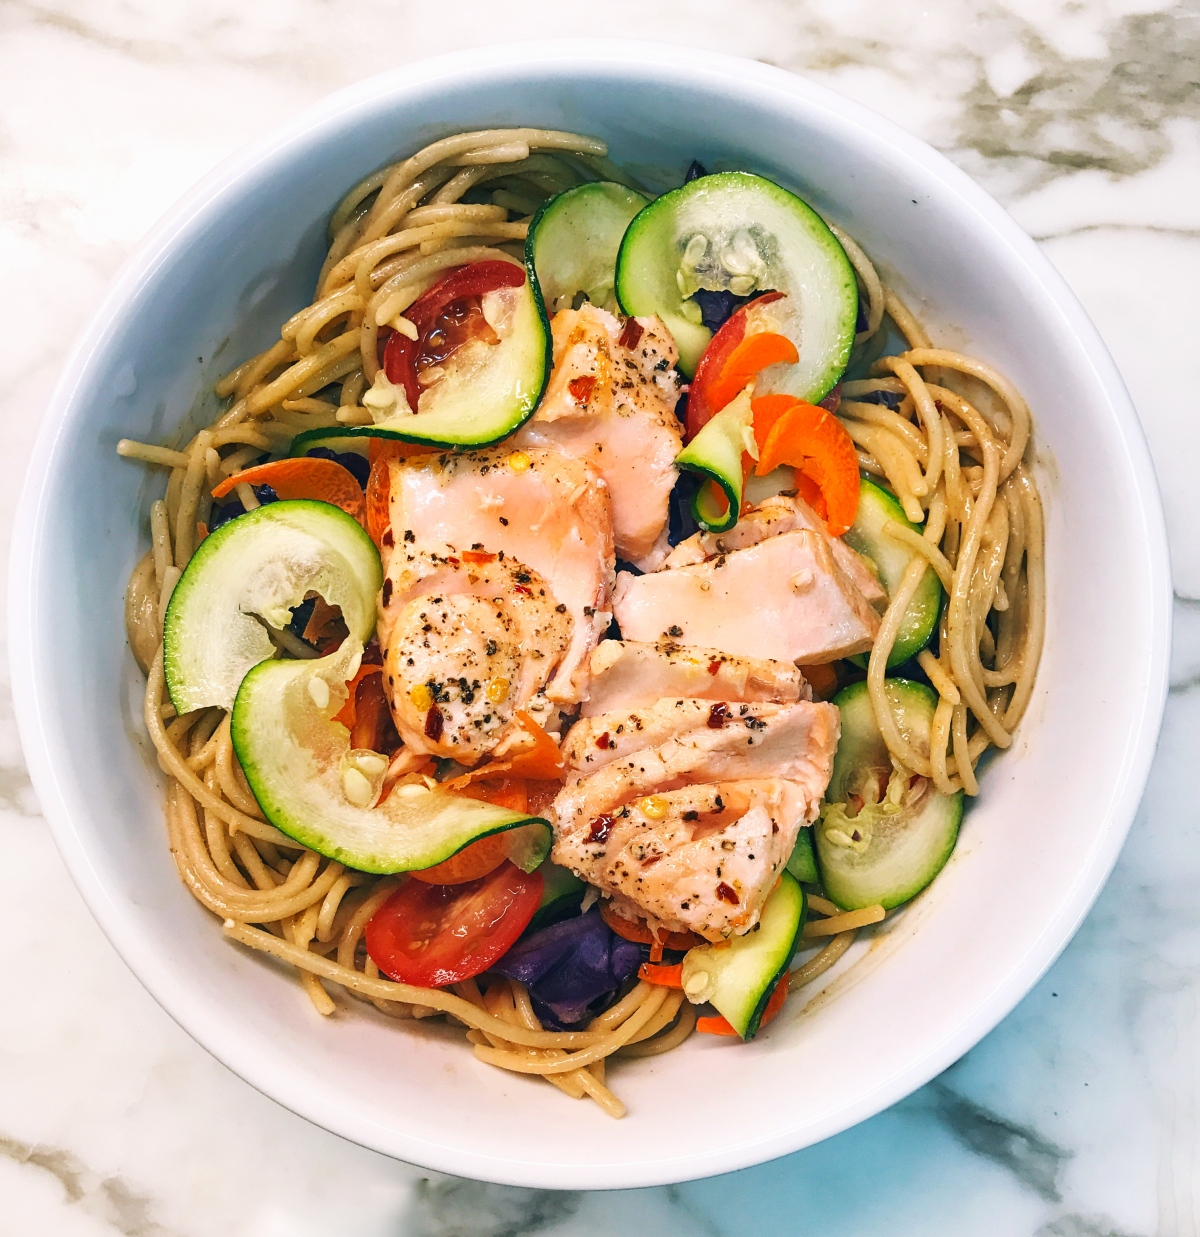 Brown Rice Noodles in a Creamy Nut Sauce with Vegetables and CoconutSalmon